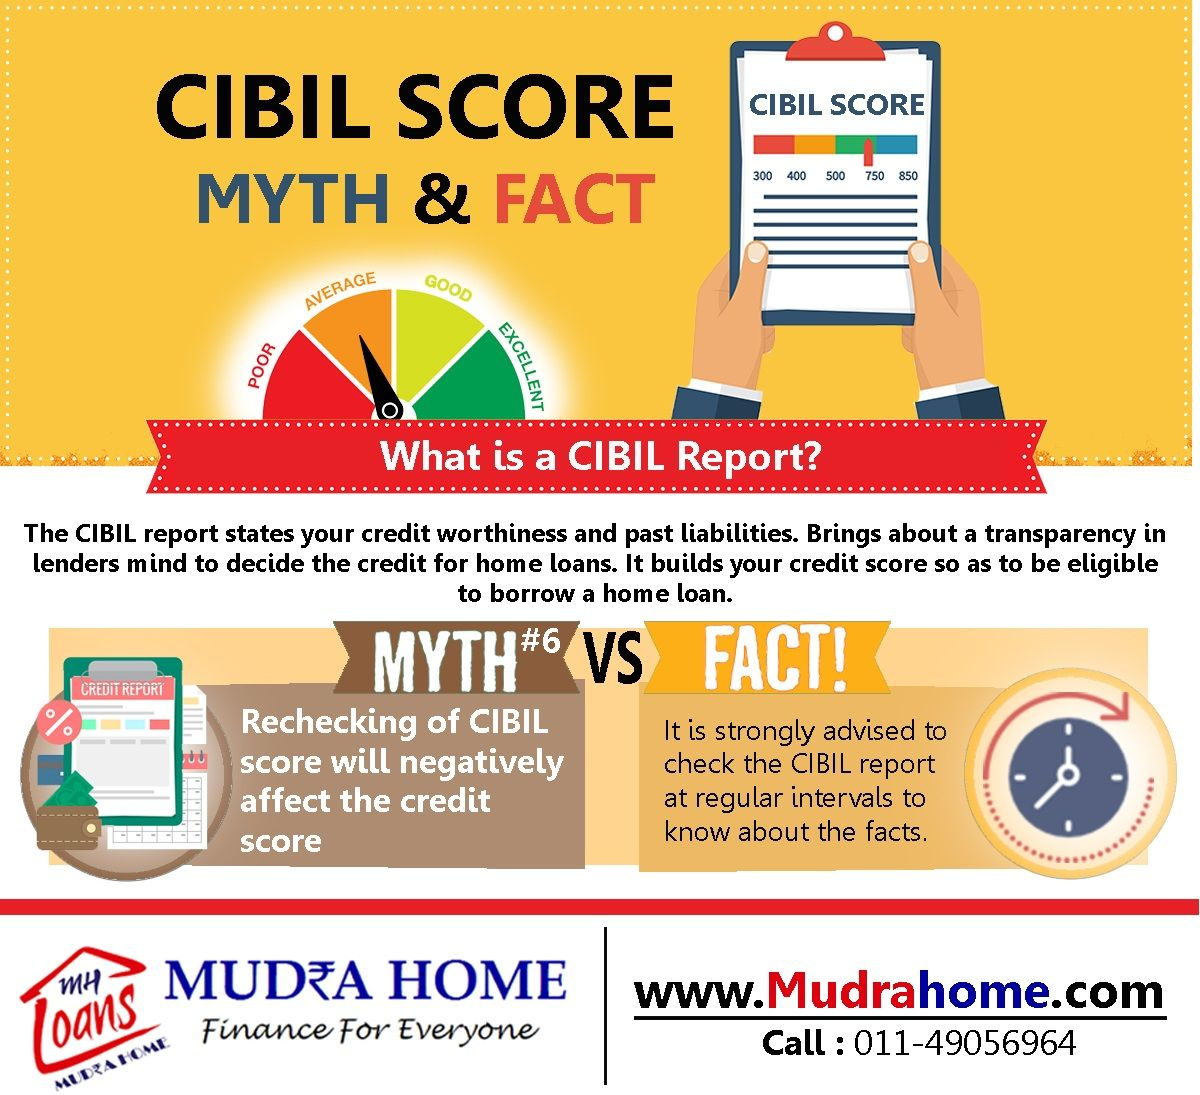 Sixth Myth Fact Of Cibil Score Follow For More Space Www Mudrahome Com Instant Loans Online Personal Loans Instant Loans